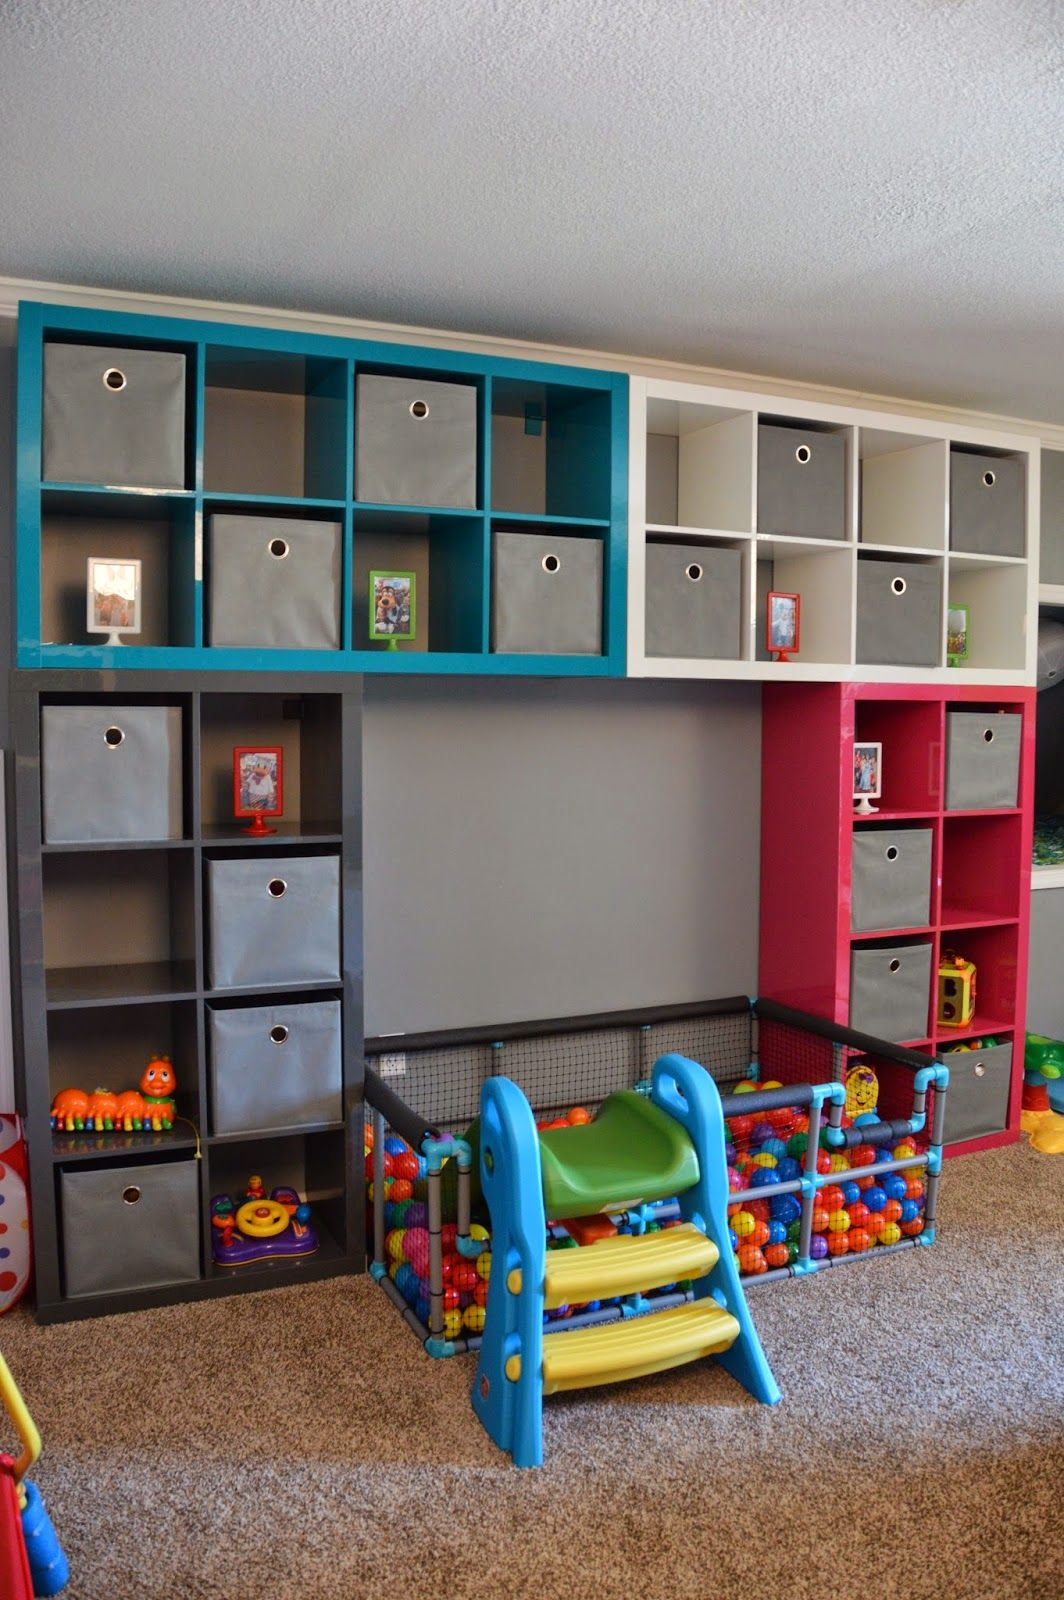 Toys Storage Ideas For Boys : Toy storage ideas diy plans in a small space your